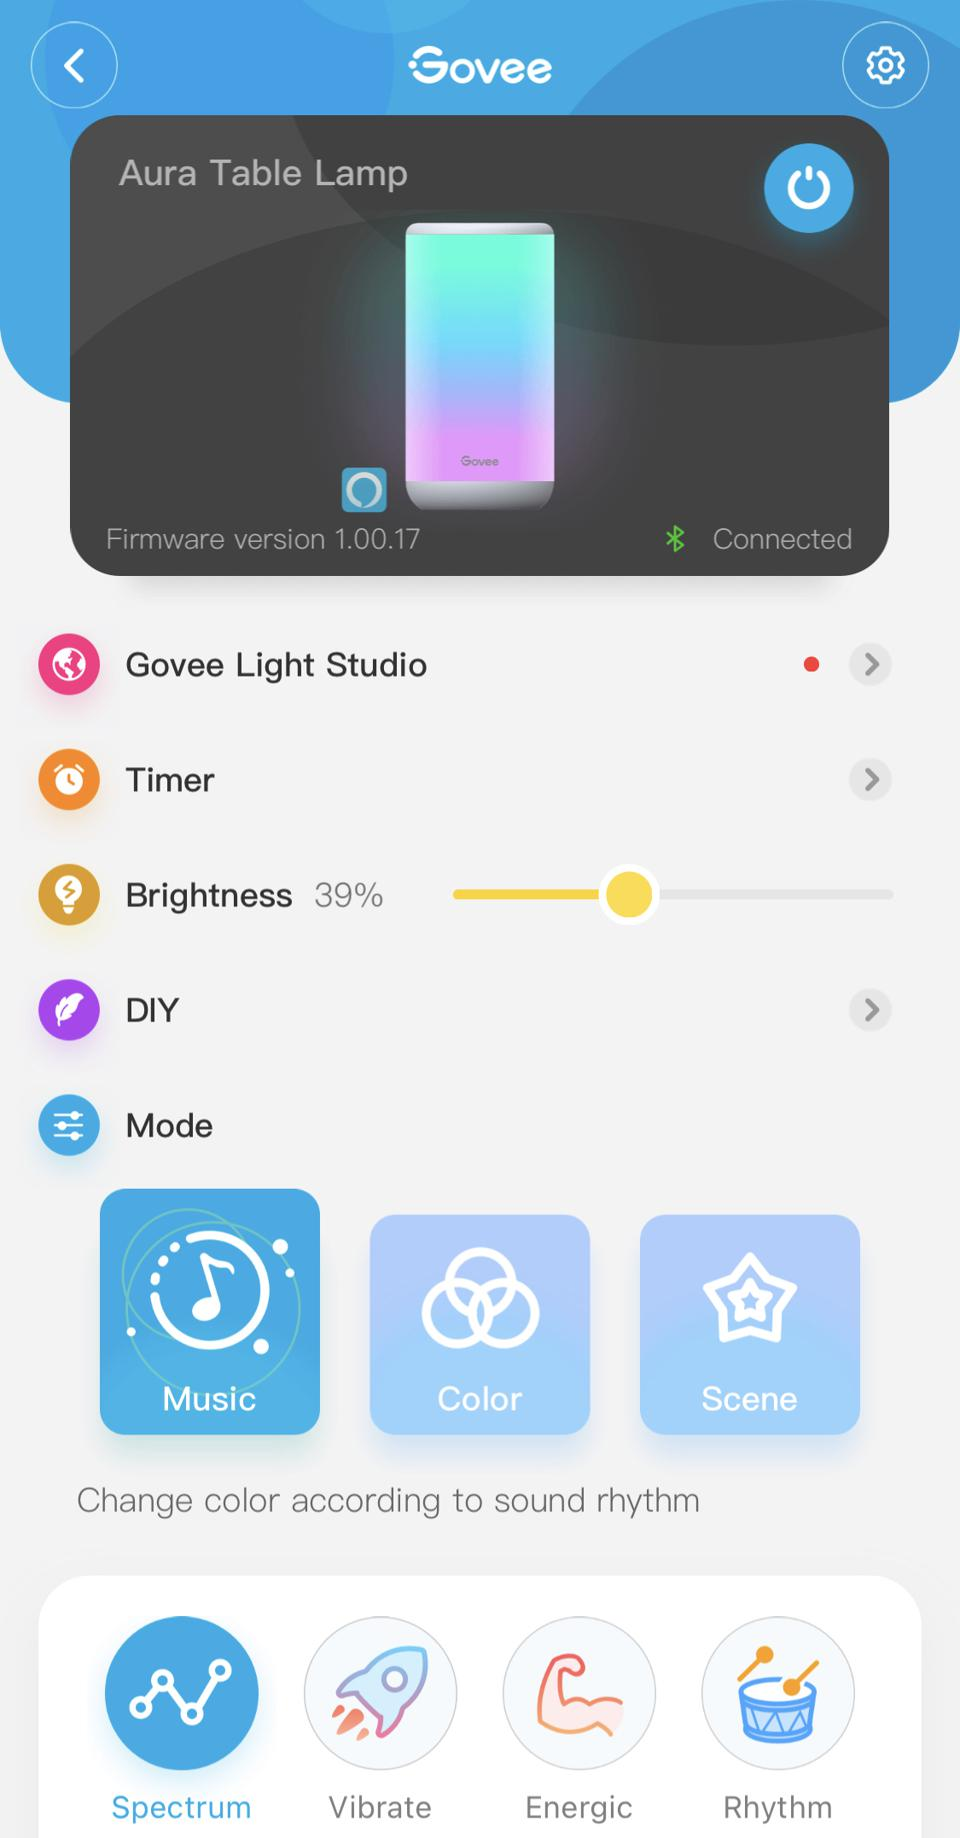 Govee Aura smart table lamp review